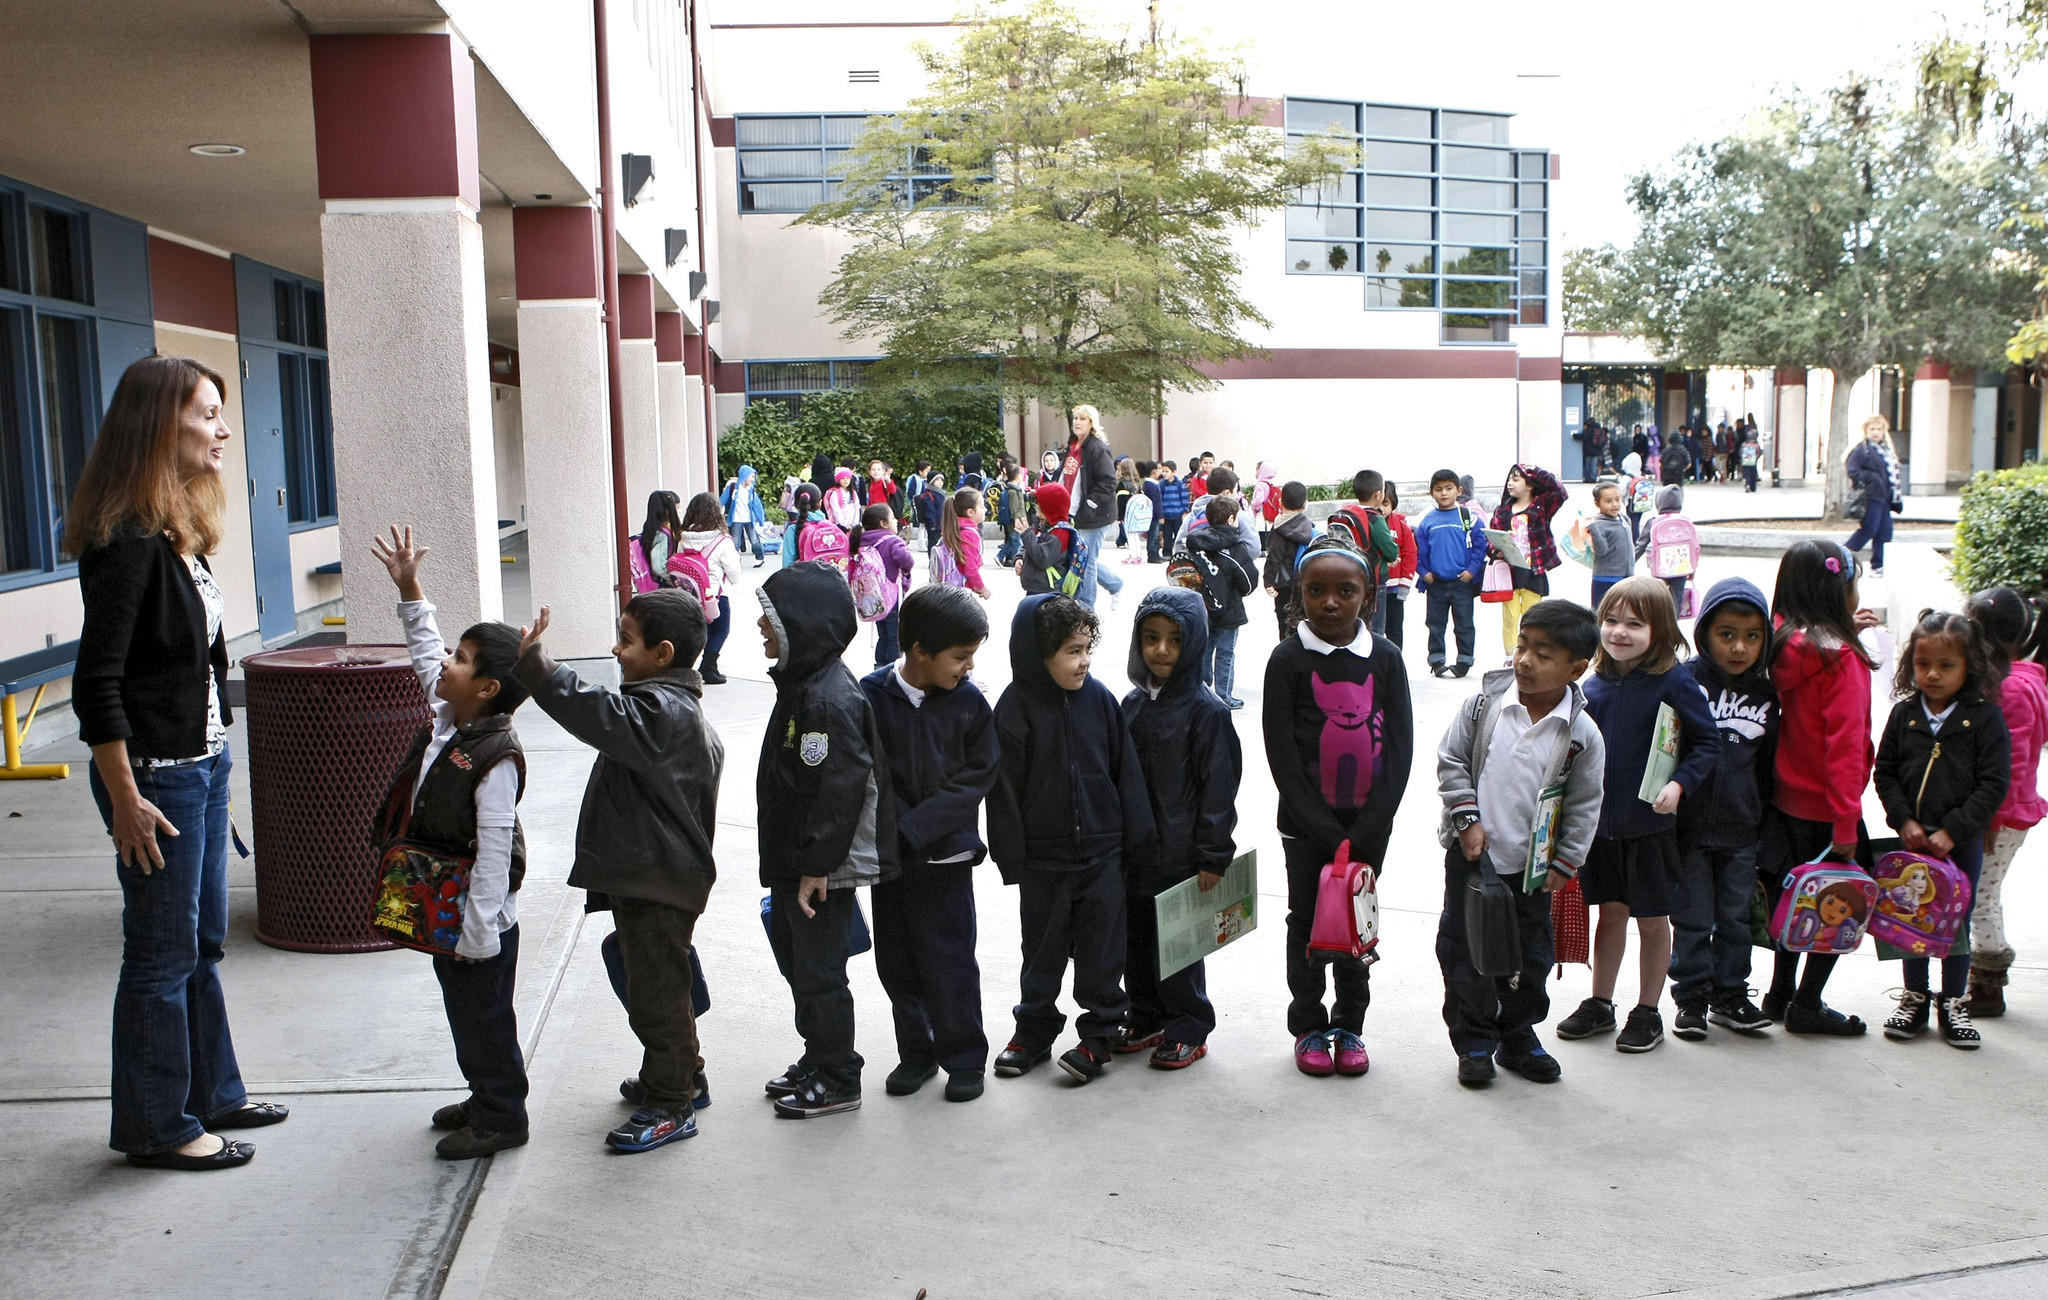 Teacher Ms. Angela Boras prepares to take her students into class at Cerritos Elementary School in Glendale on Tuesday, January 7, 2014. The school is one of three in the Glendale Unified School District to be eligible to earn a California Distinguished School award.